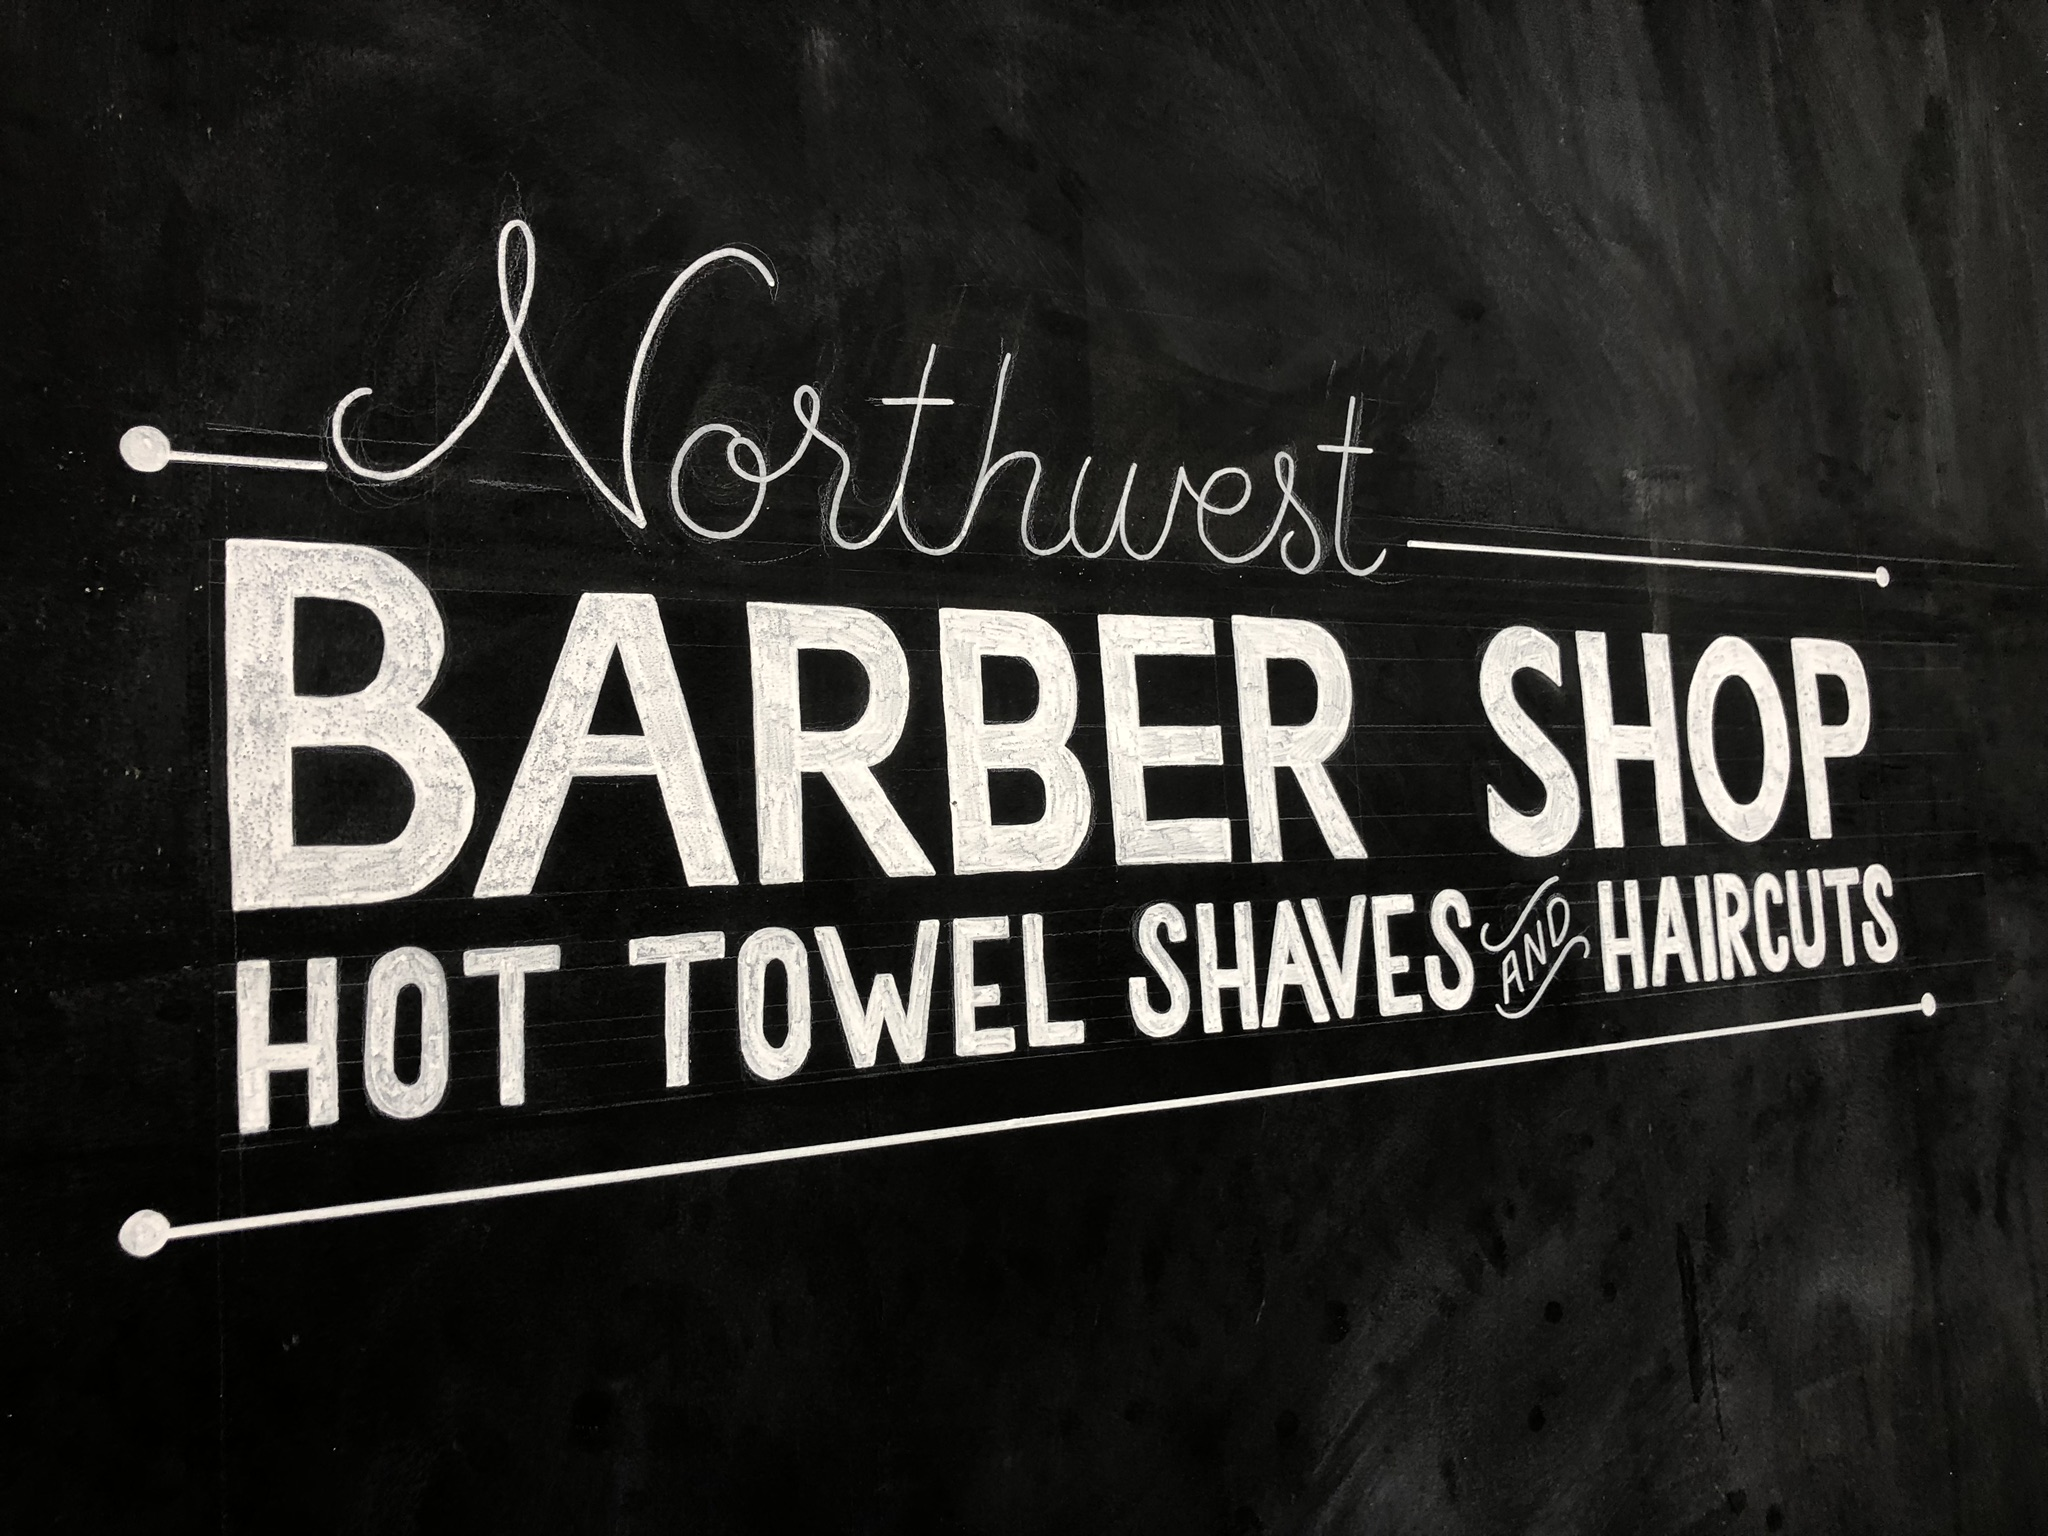 Hand-painted piece done for the Northwest Barber Shop located in Ellensburg, WA.